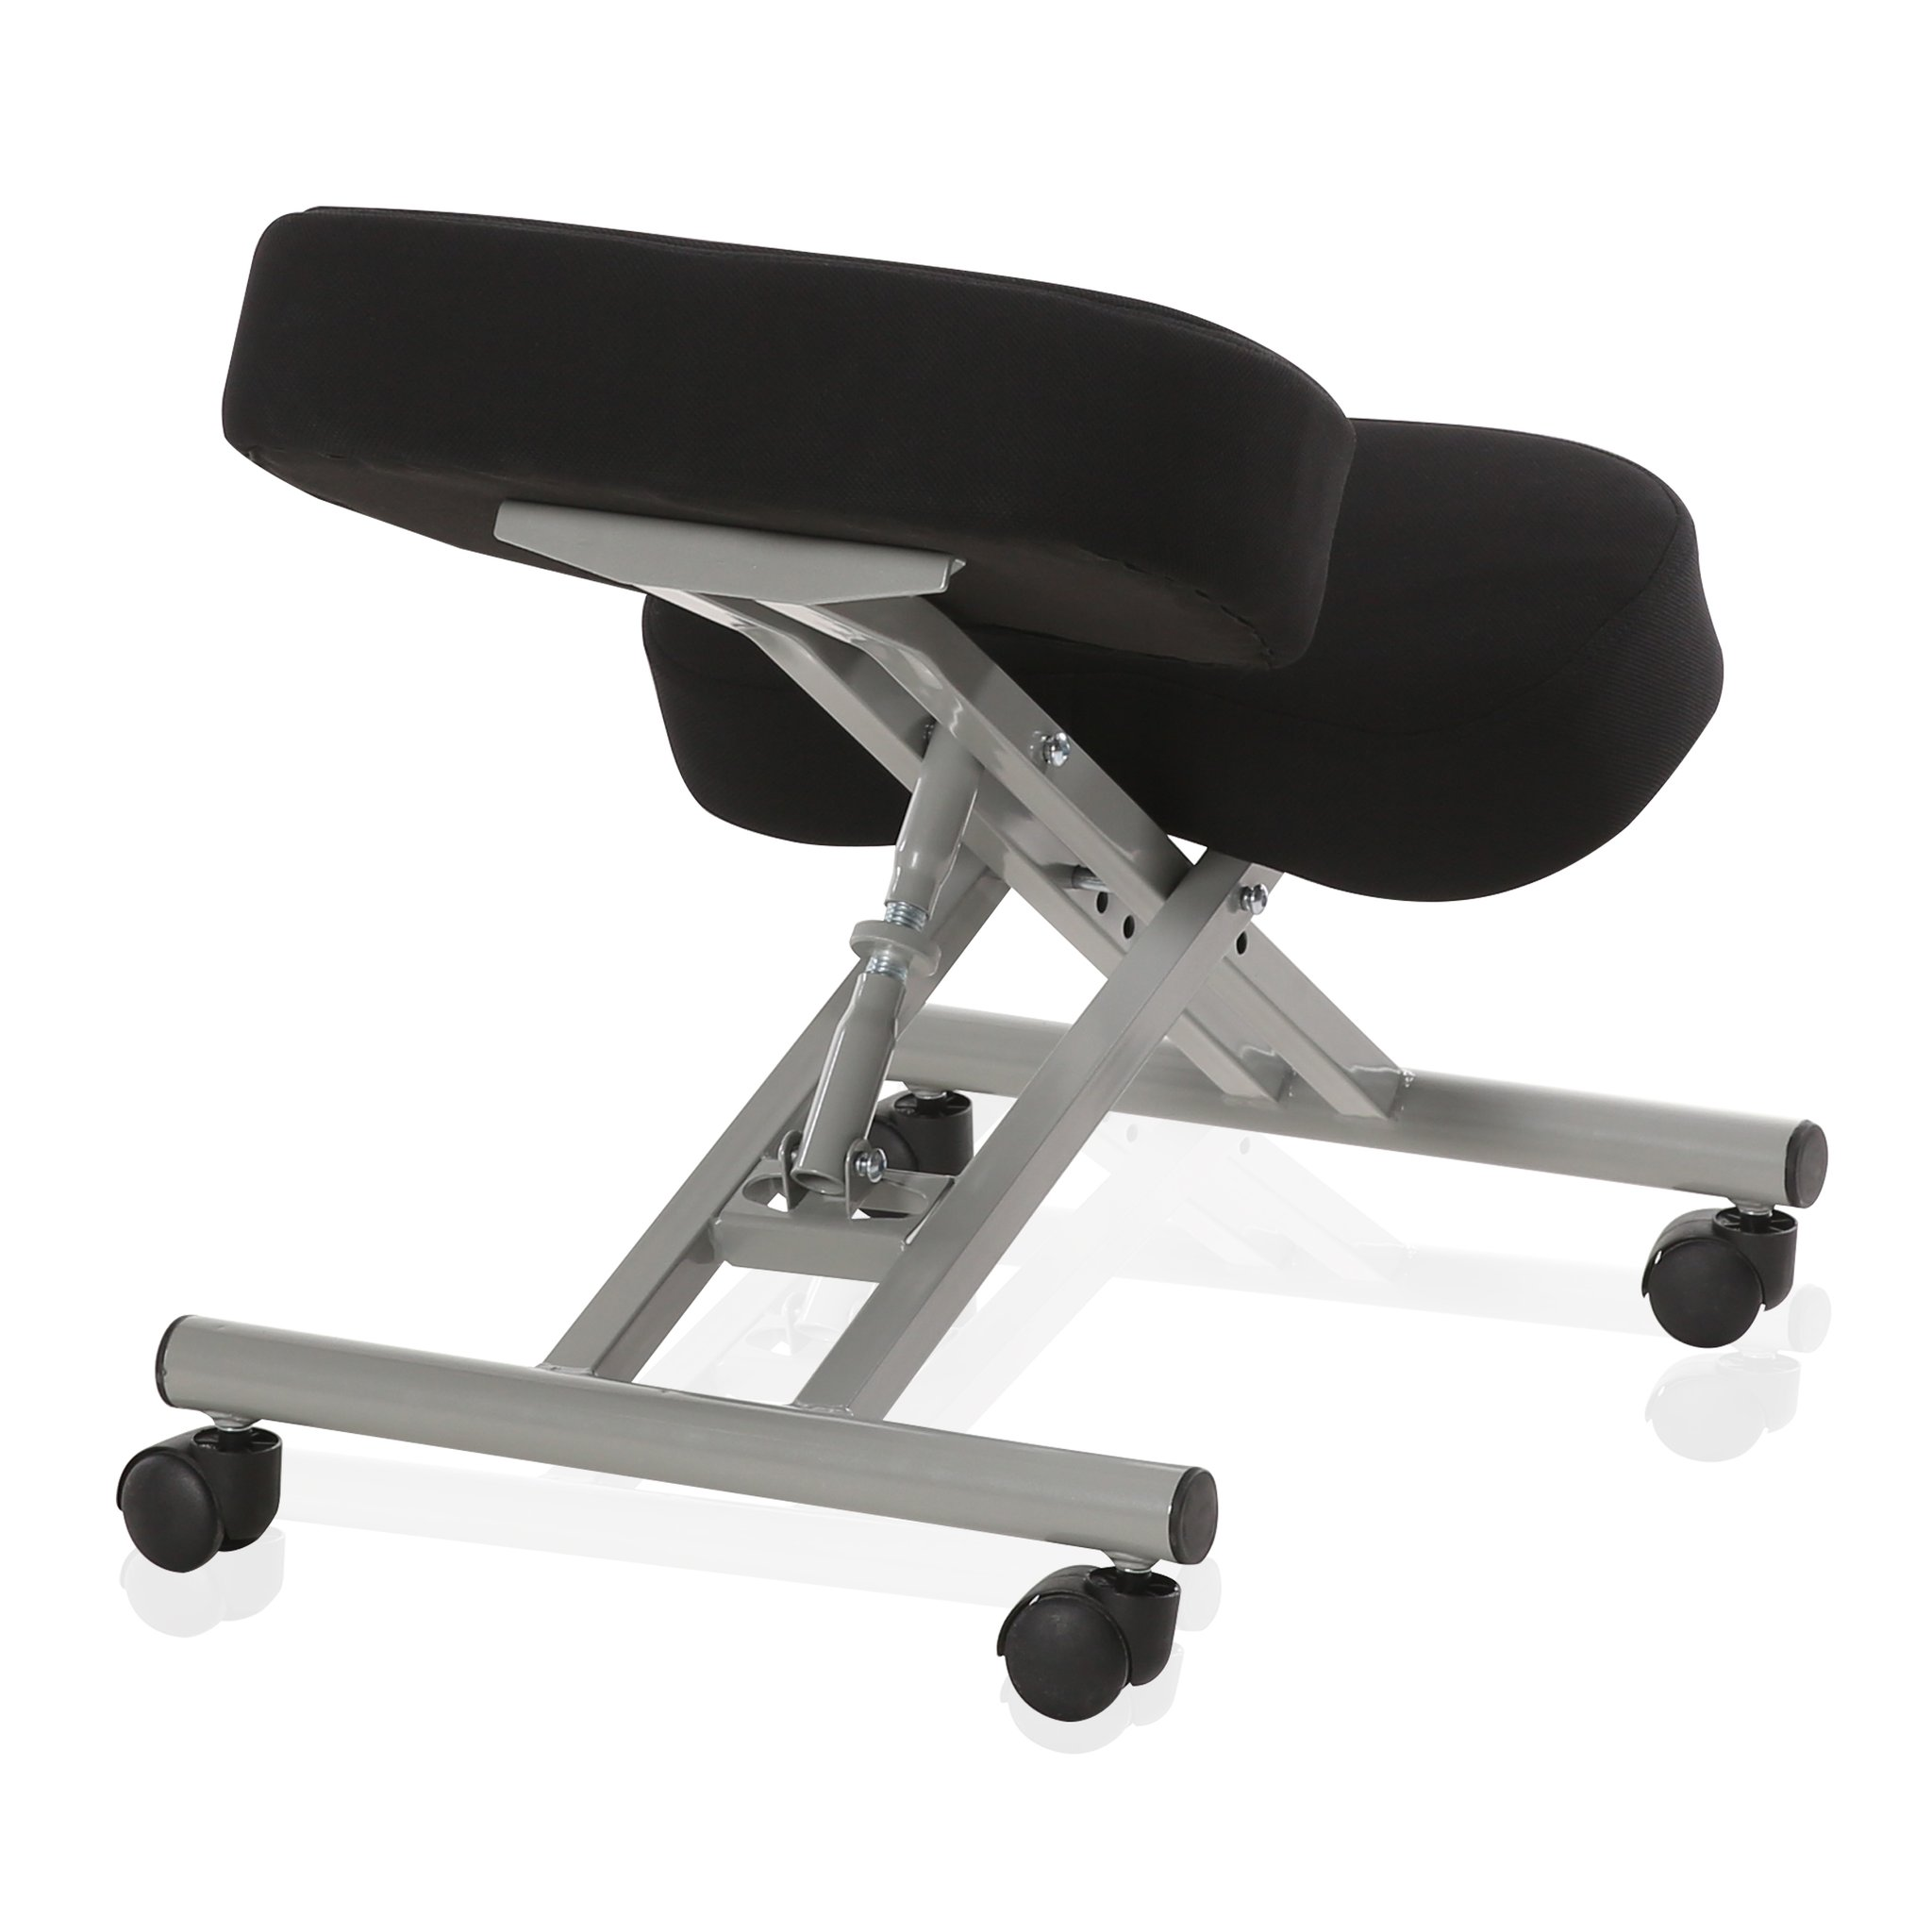 Ergonomic Orthopaedic Posture Steel Adjustable Kneeling